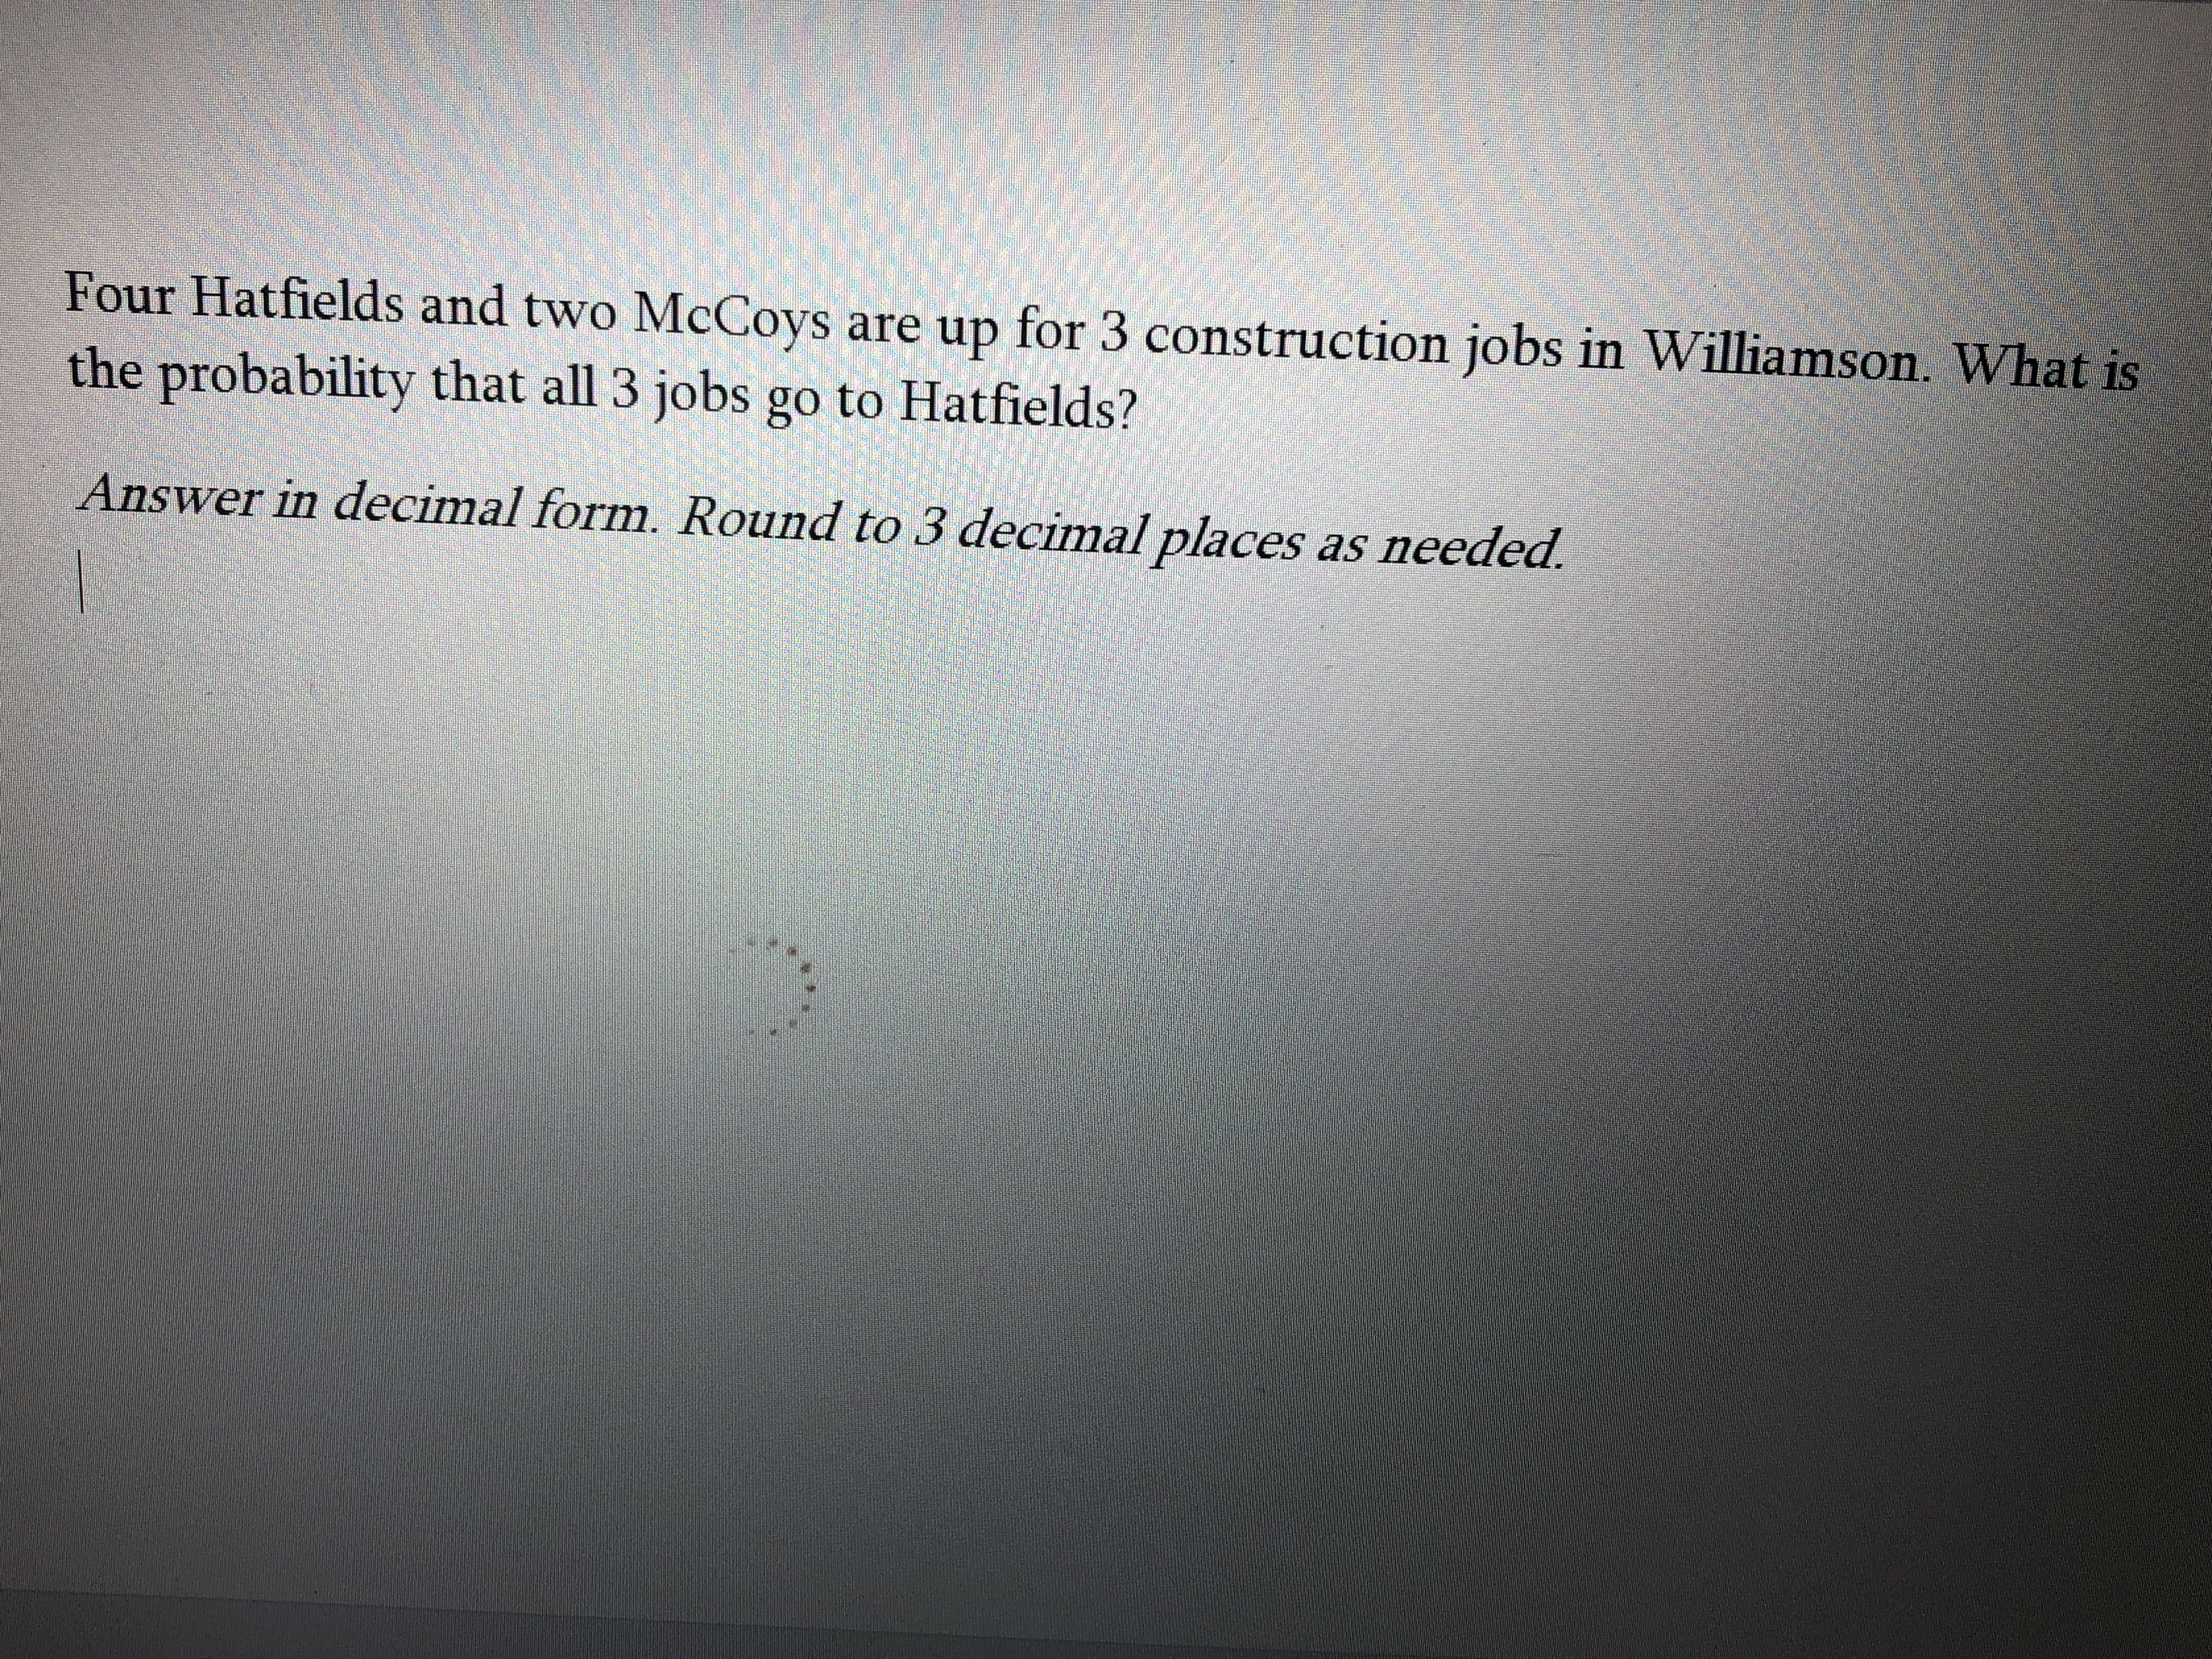 Four Hatfields and two McCoys are up for 3 construction jobs in Williamson. What is the probability that all 3 jobs go to Hatfields? Answer in decimal form. Round to 3 decimal places as needed.